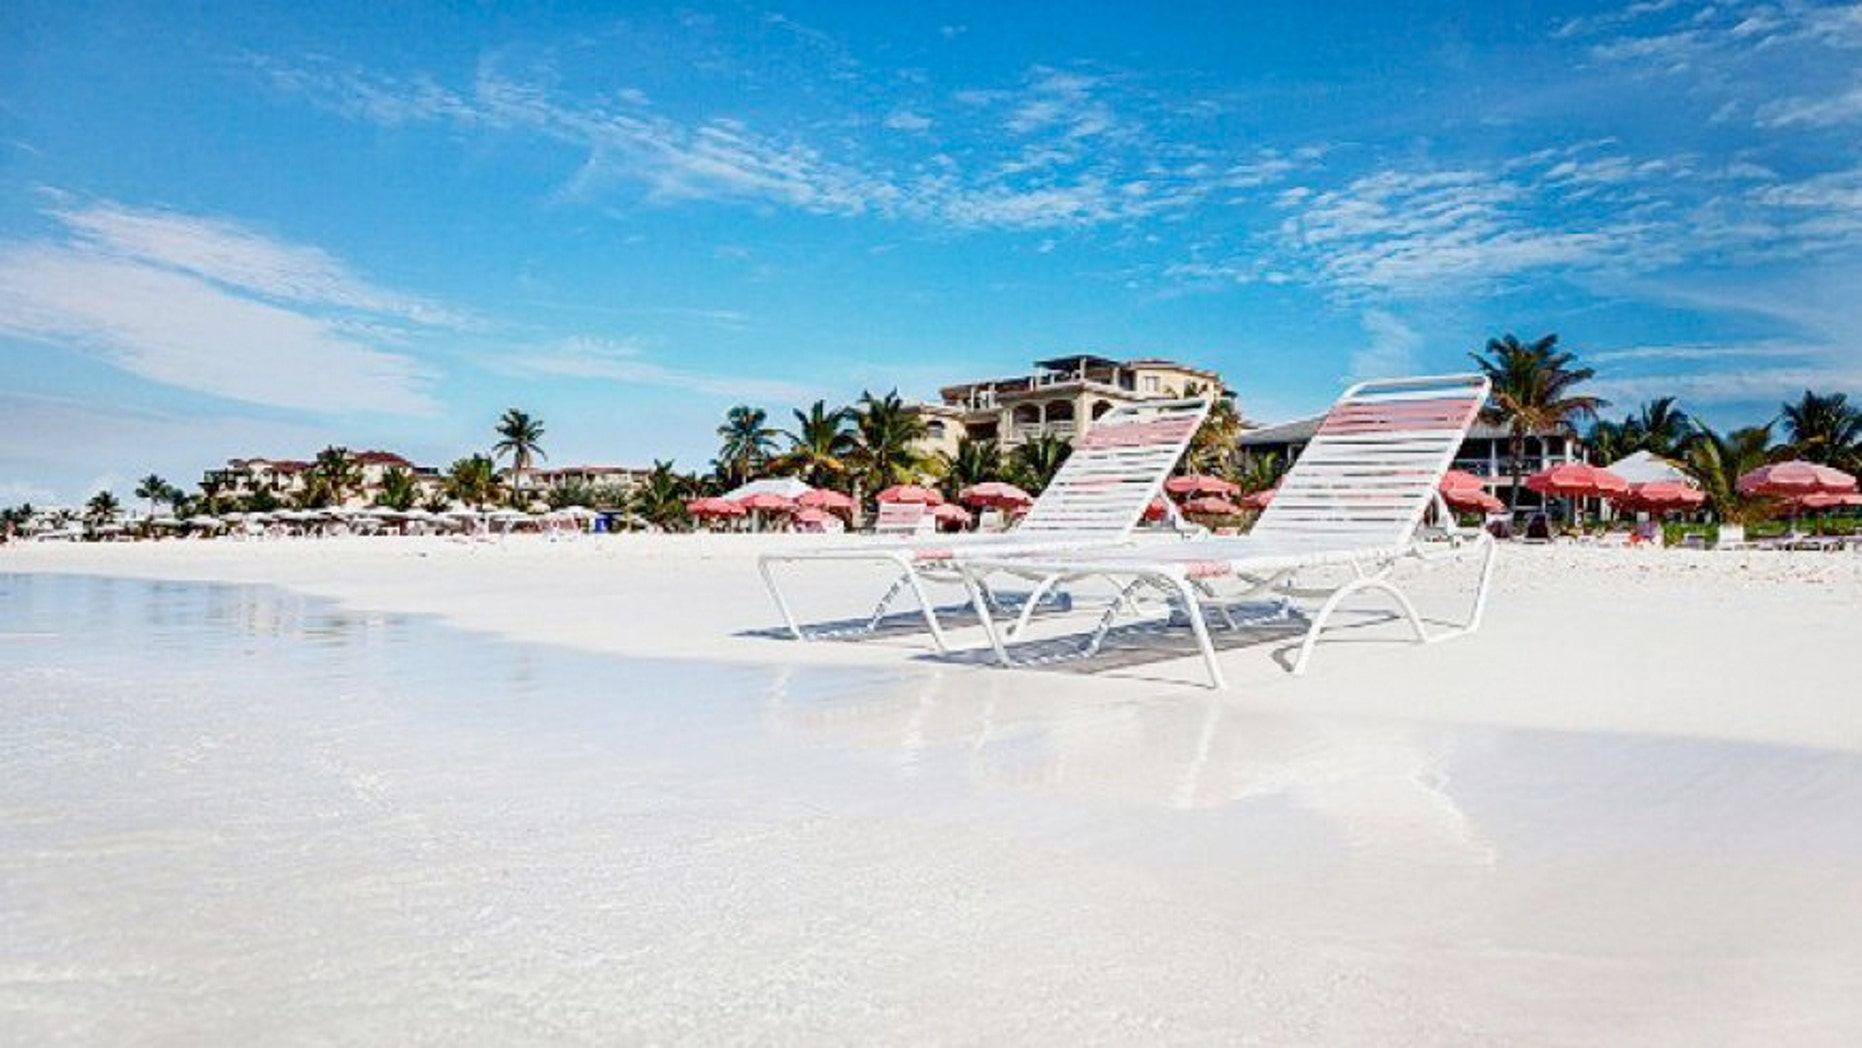 Turks and Caicos believes more sun will help boost tourism.